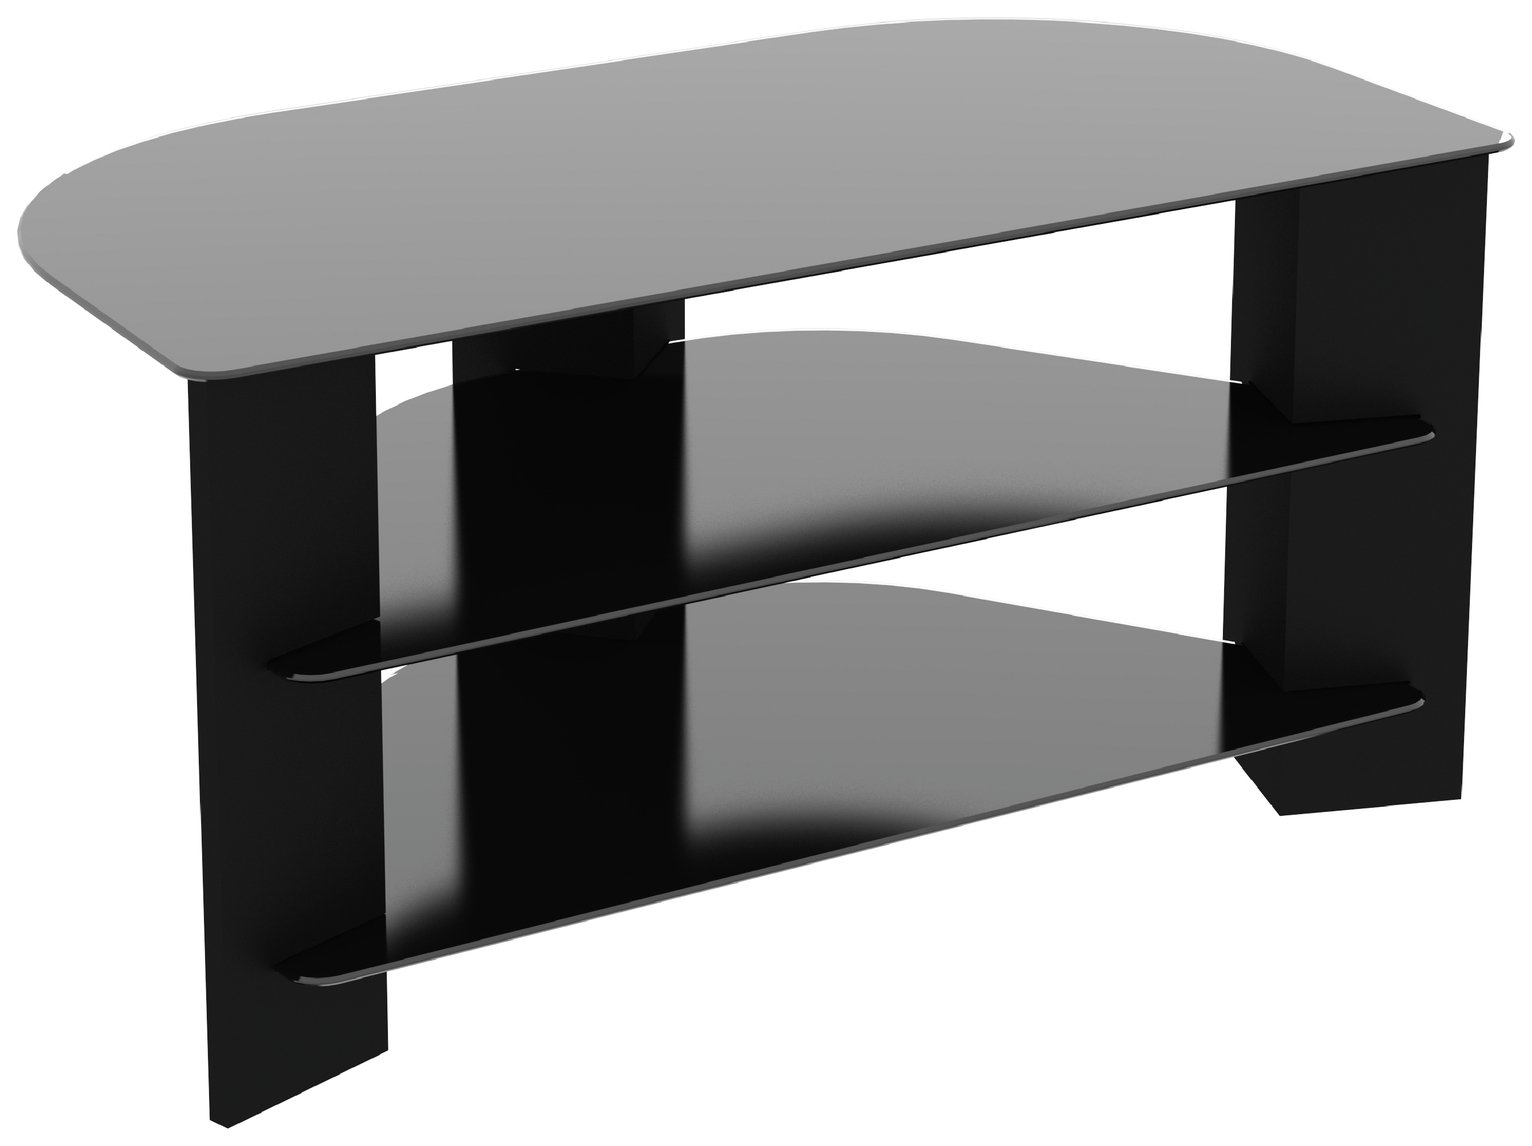 Buy Avf Wood Effect Up To 42 Inch Tv Corner Stand Black Tv